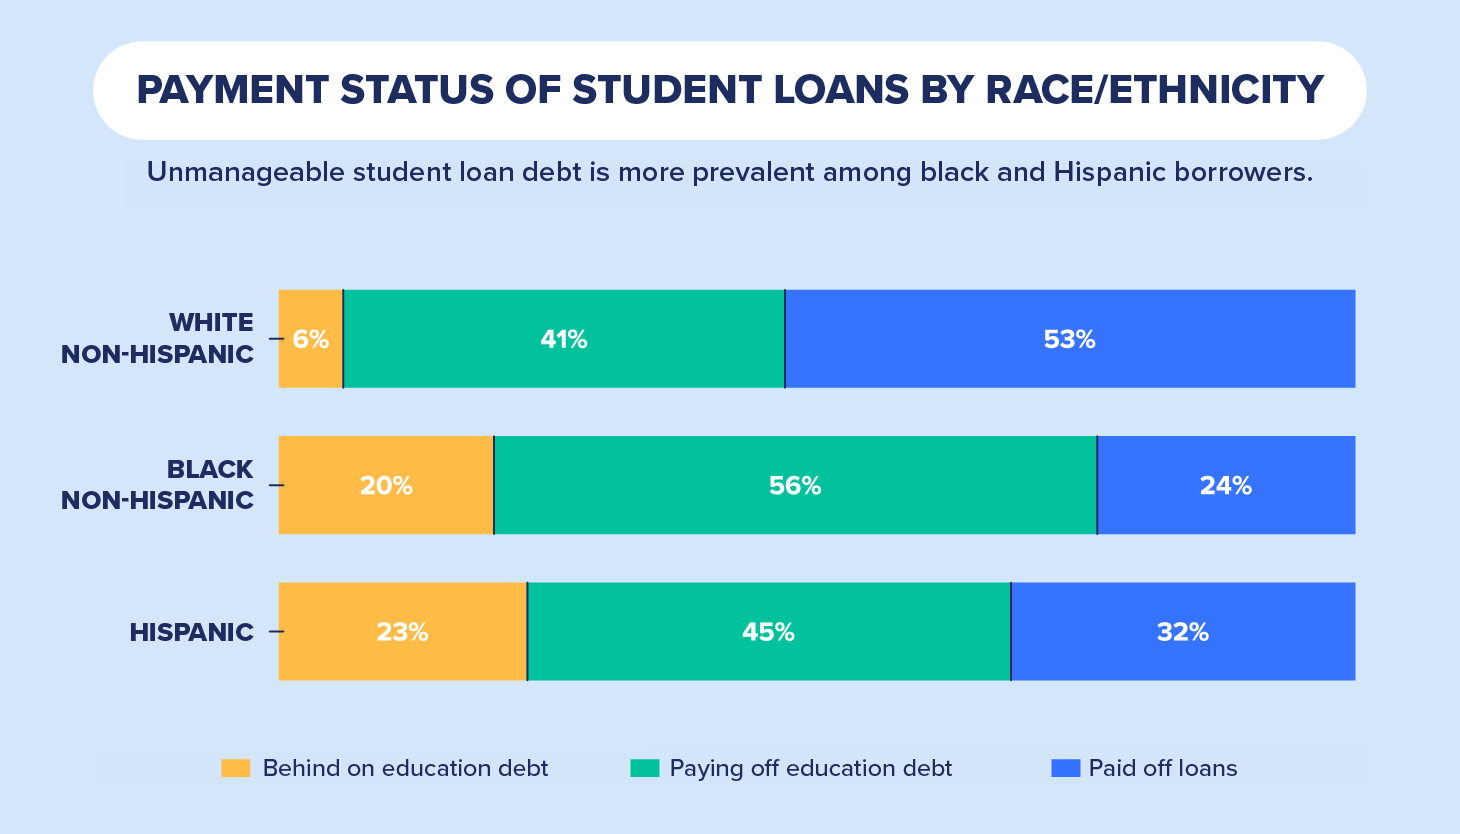 payment status of student loan by race chart